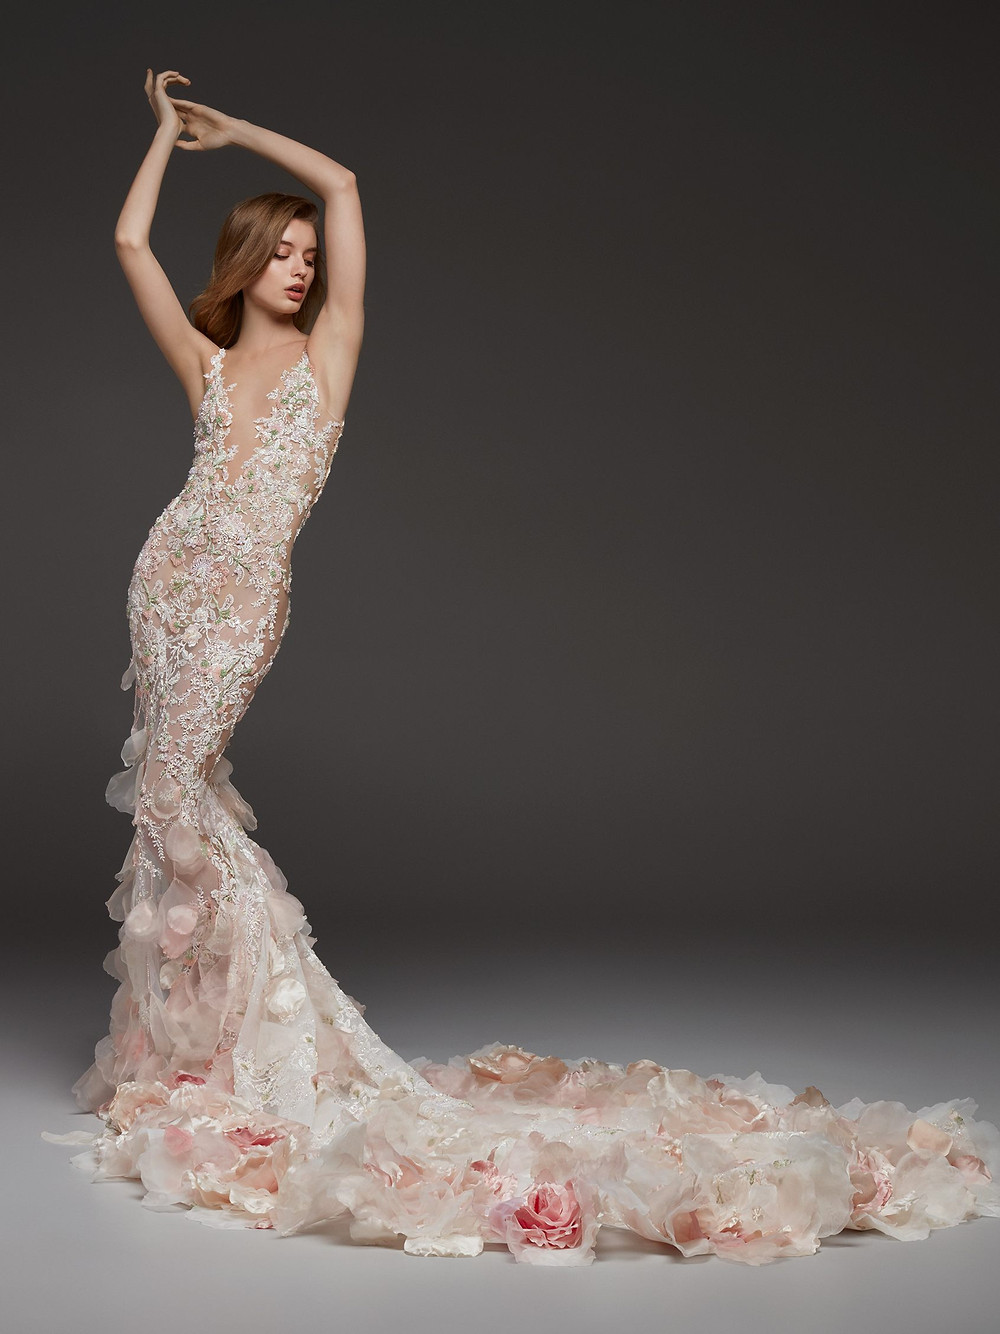 A blush mermaid wedding dress, with flowers and a long train